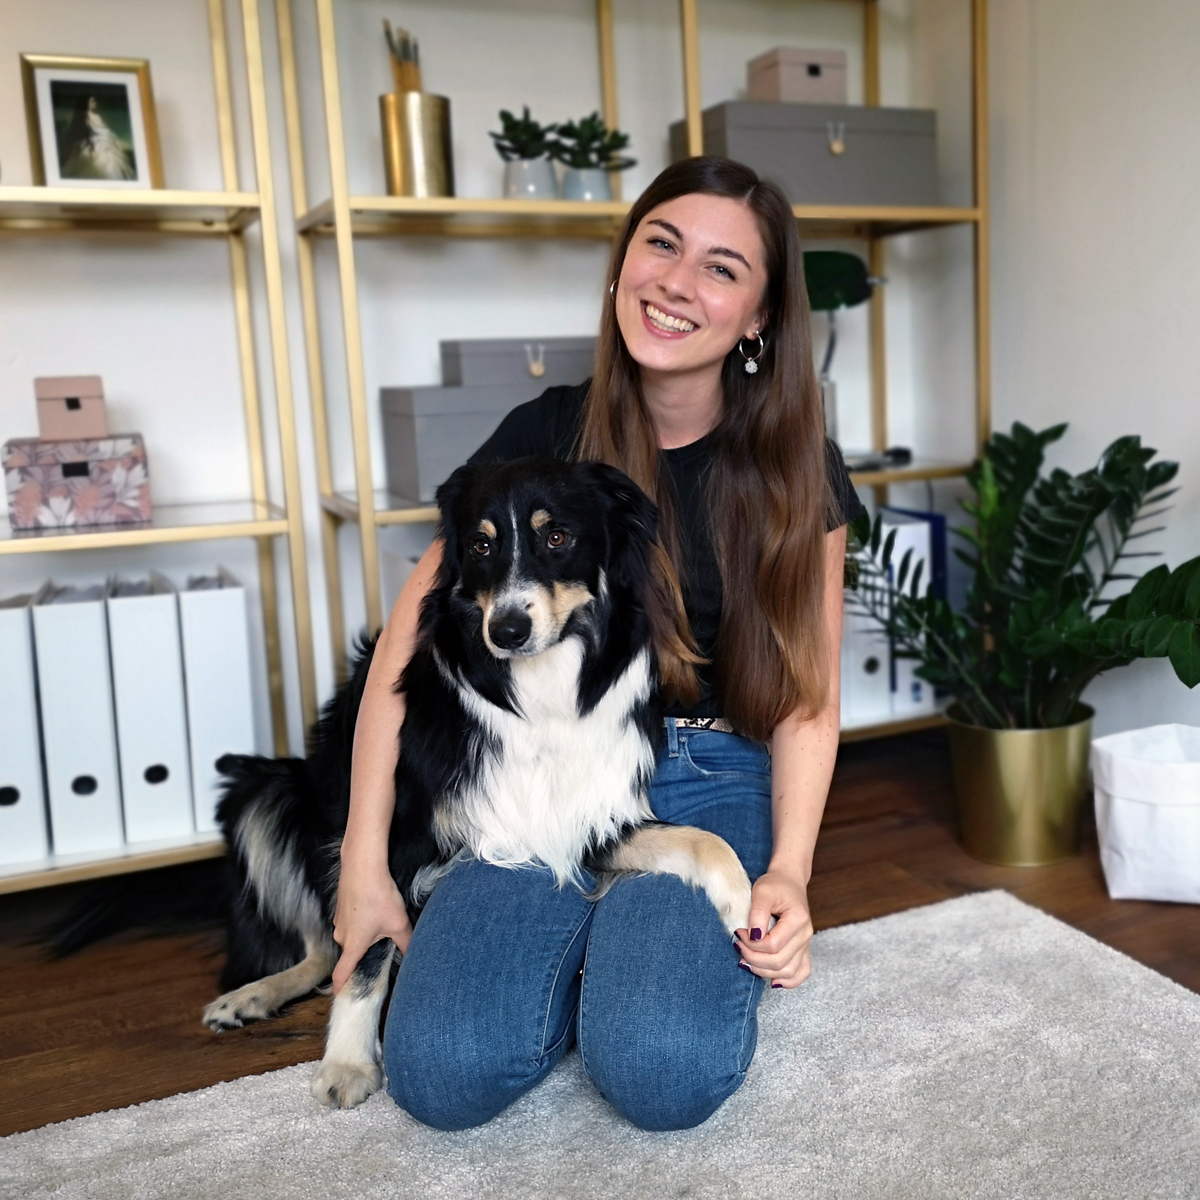 Digitales Coworking by Lisa Drebber, Gründerin Lisa Drebber mit Hund im Home Office